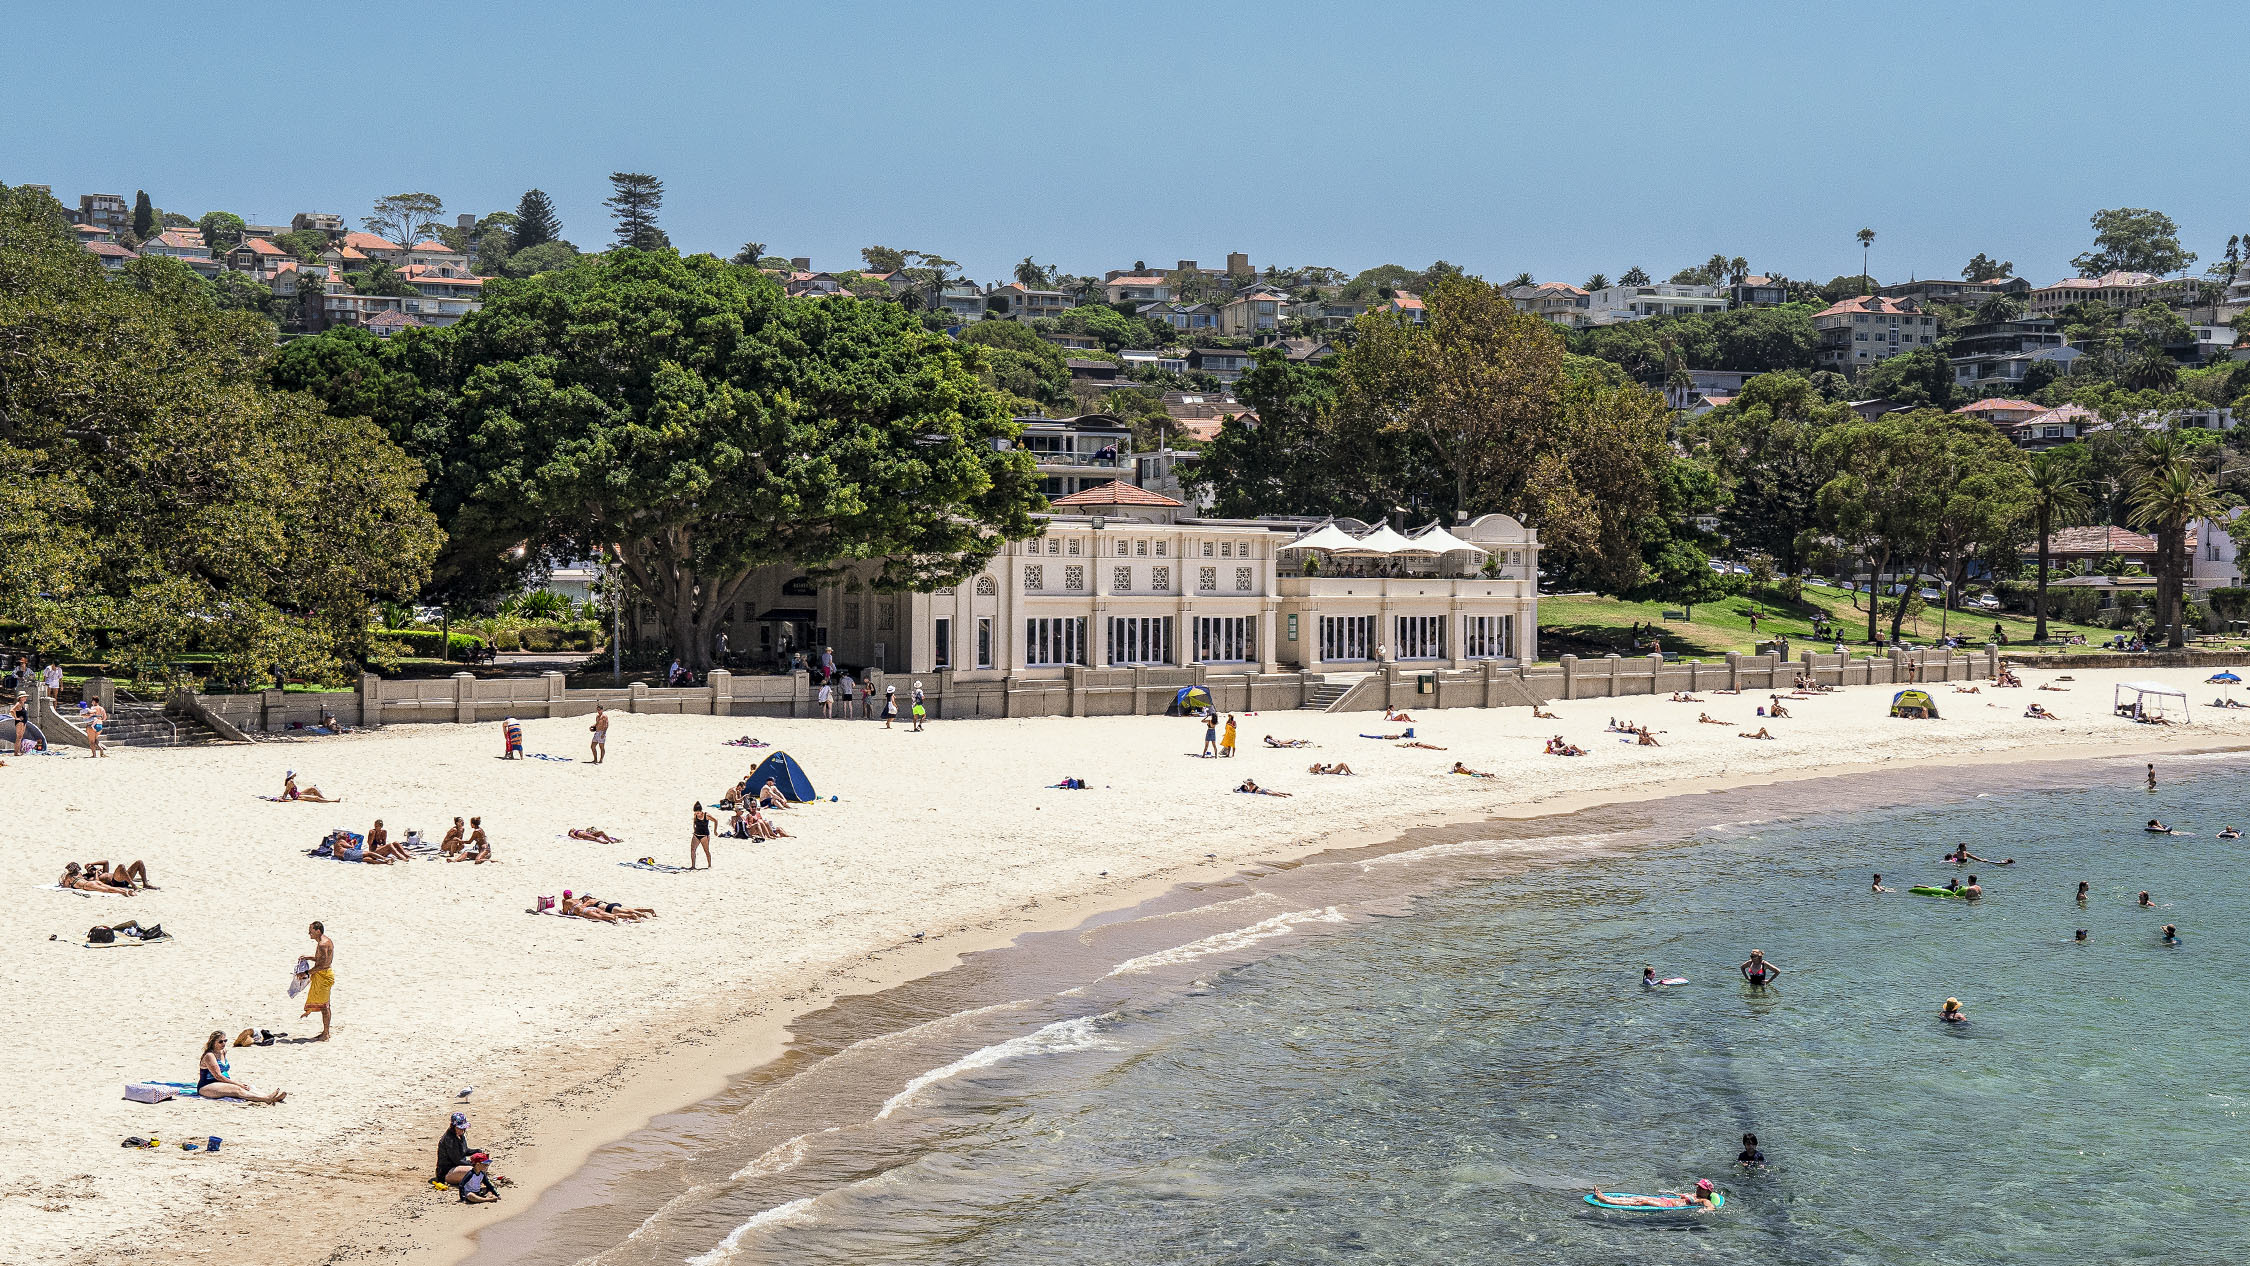 Building exterior with beach at Bathers' Pavillion